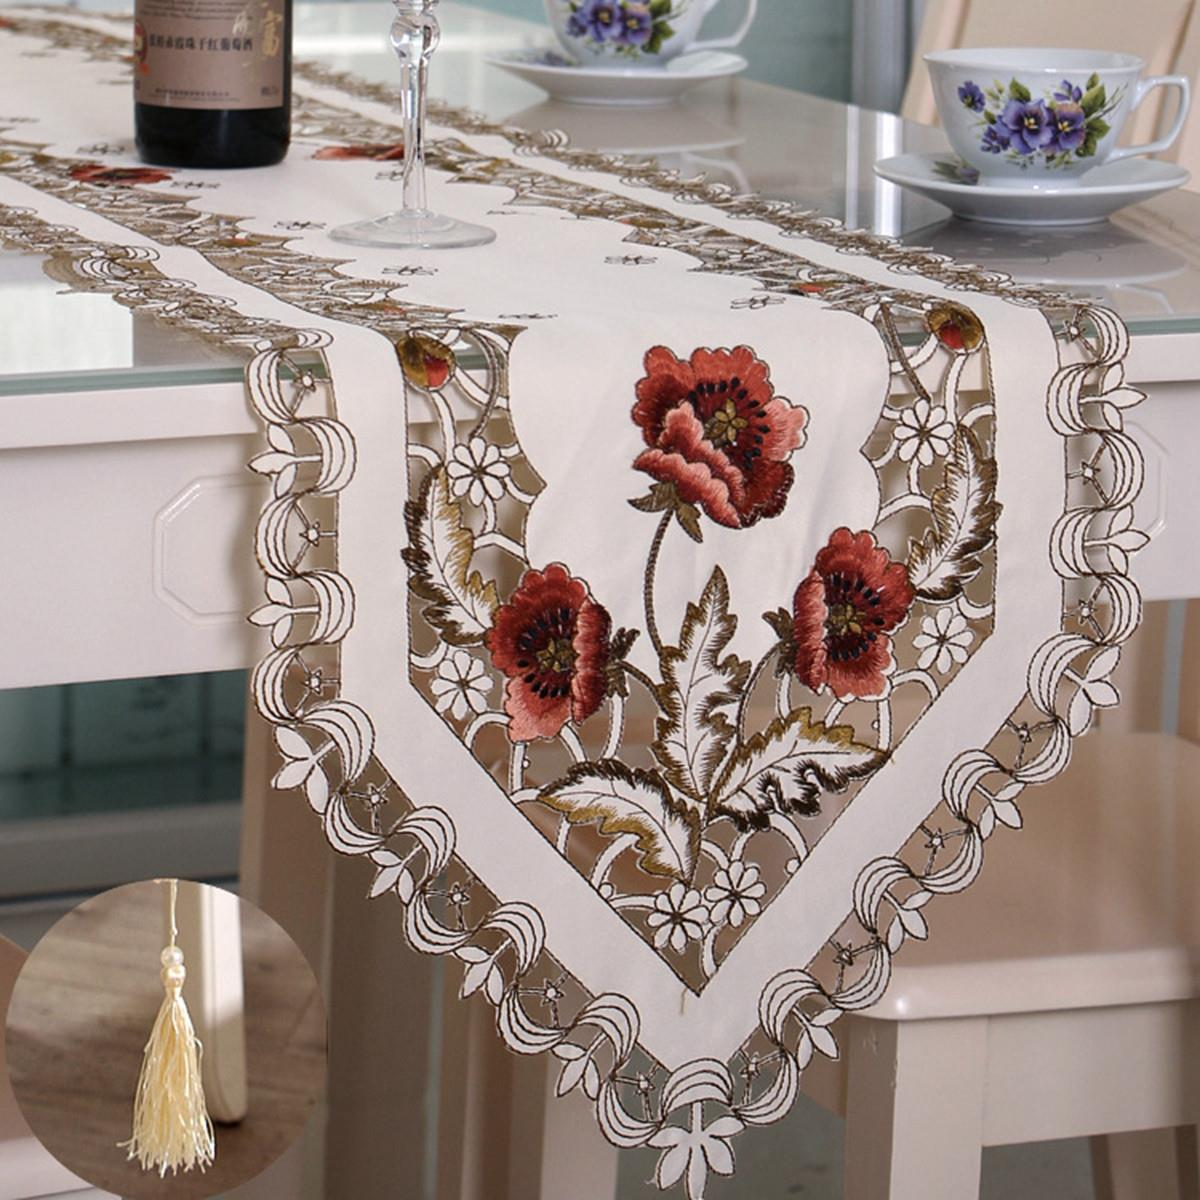 Elegant Polyester Embroidery Table Runner Handmade Embroidered Flower  Floral Cutwork Simple Home Table Cloth Covers Runners